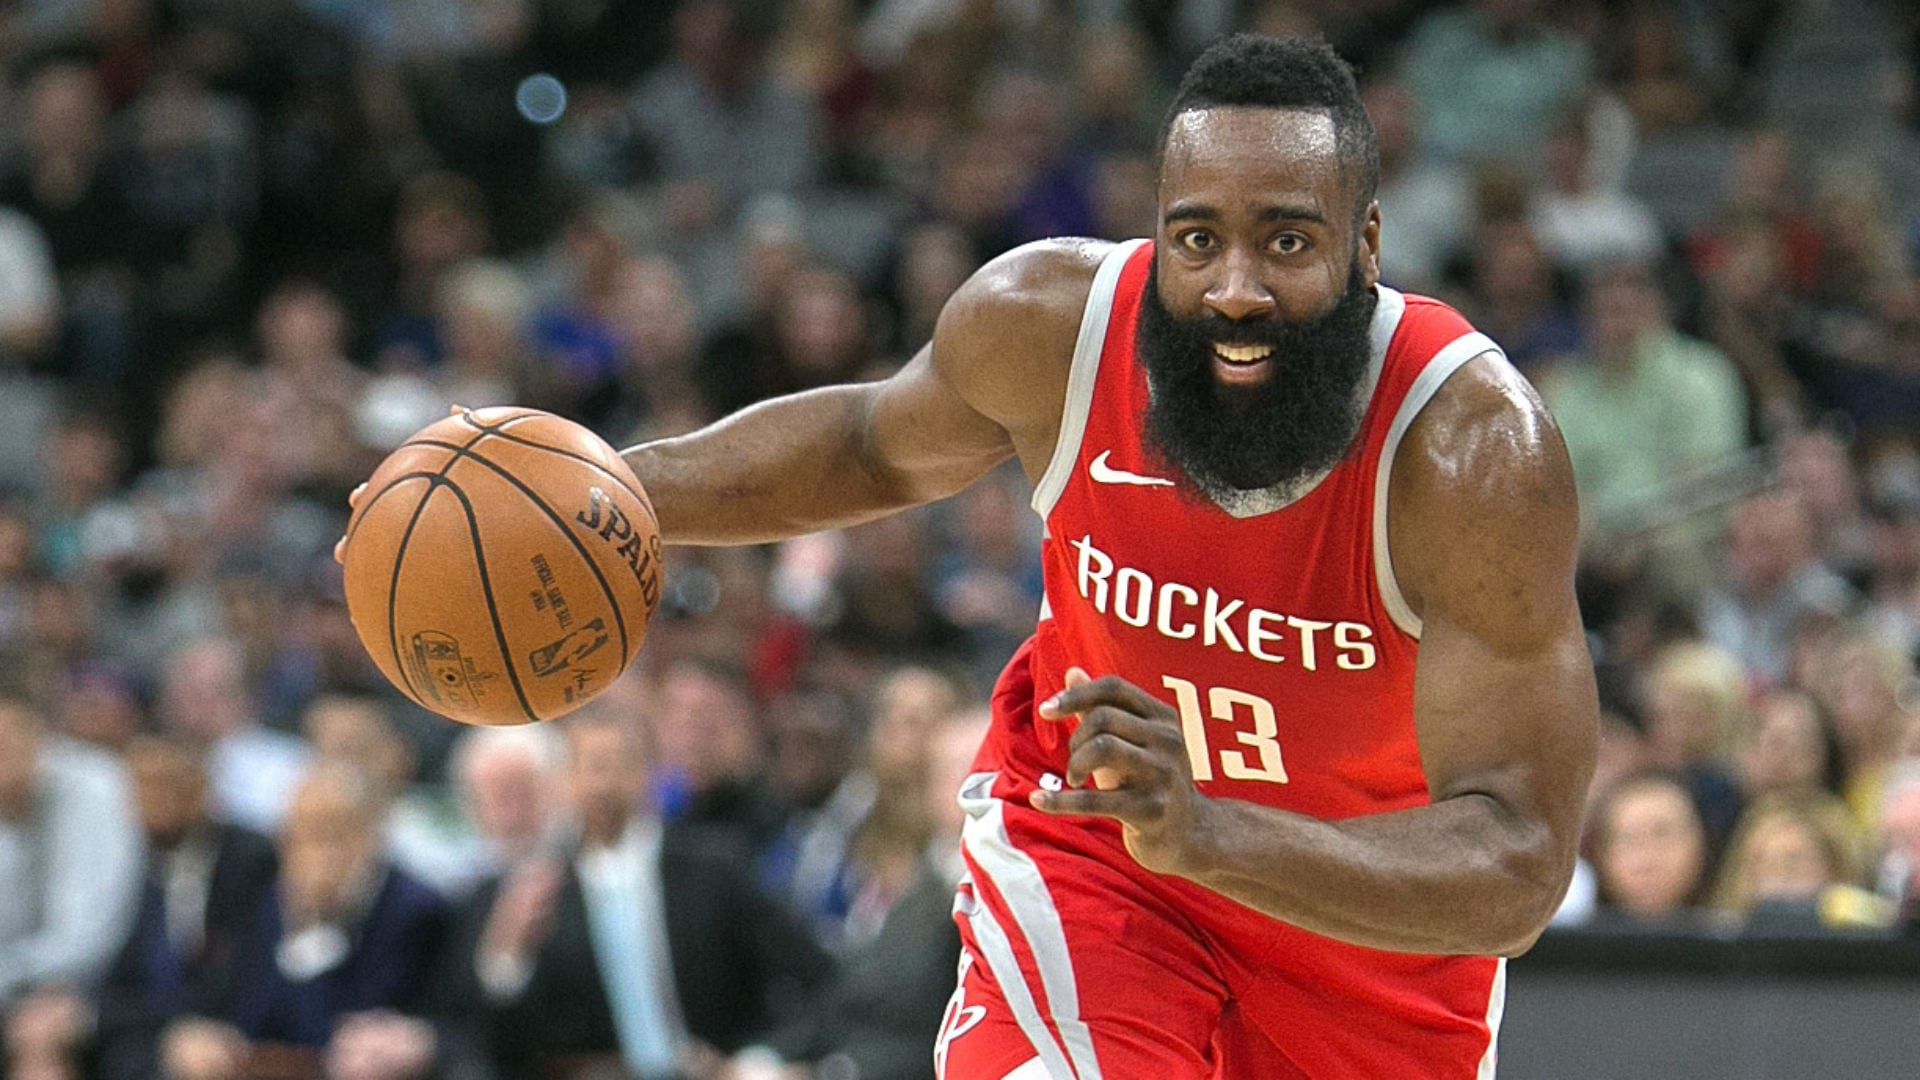 NBA Rumors: Houston Rockets can beat the Lakers and Clippers